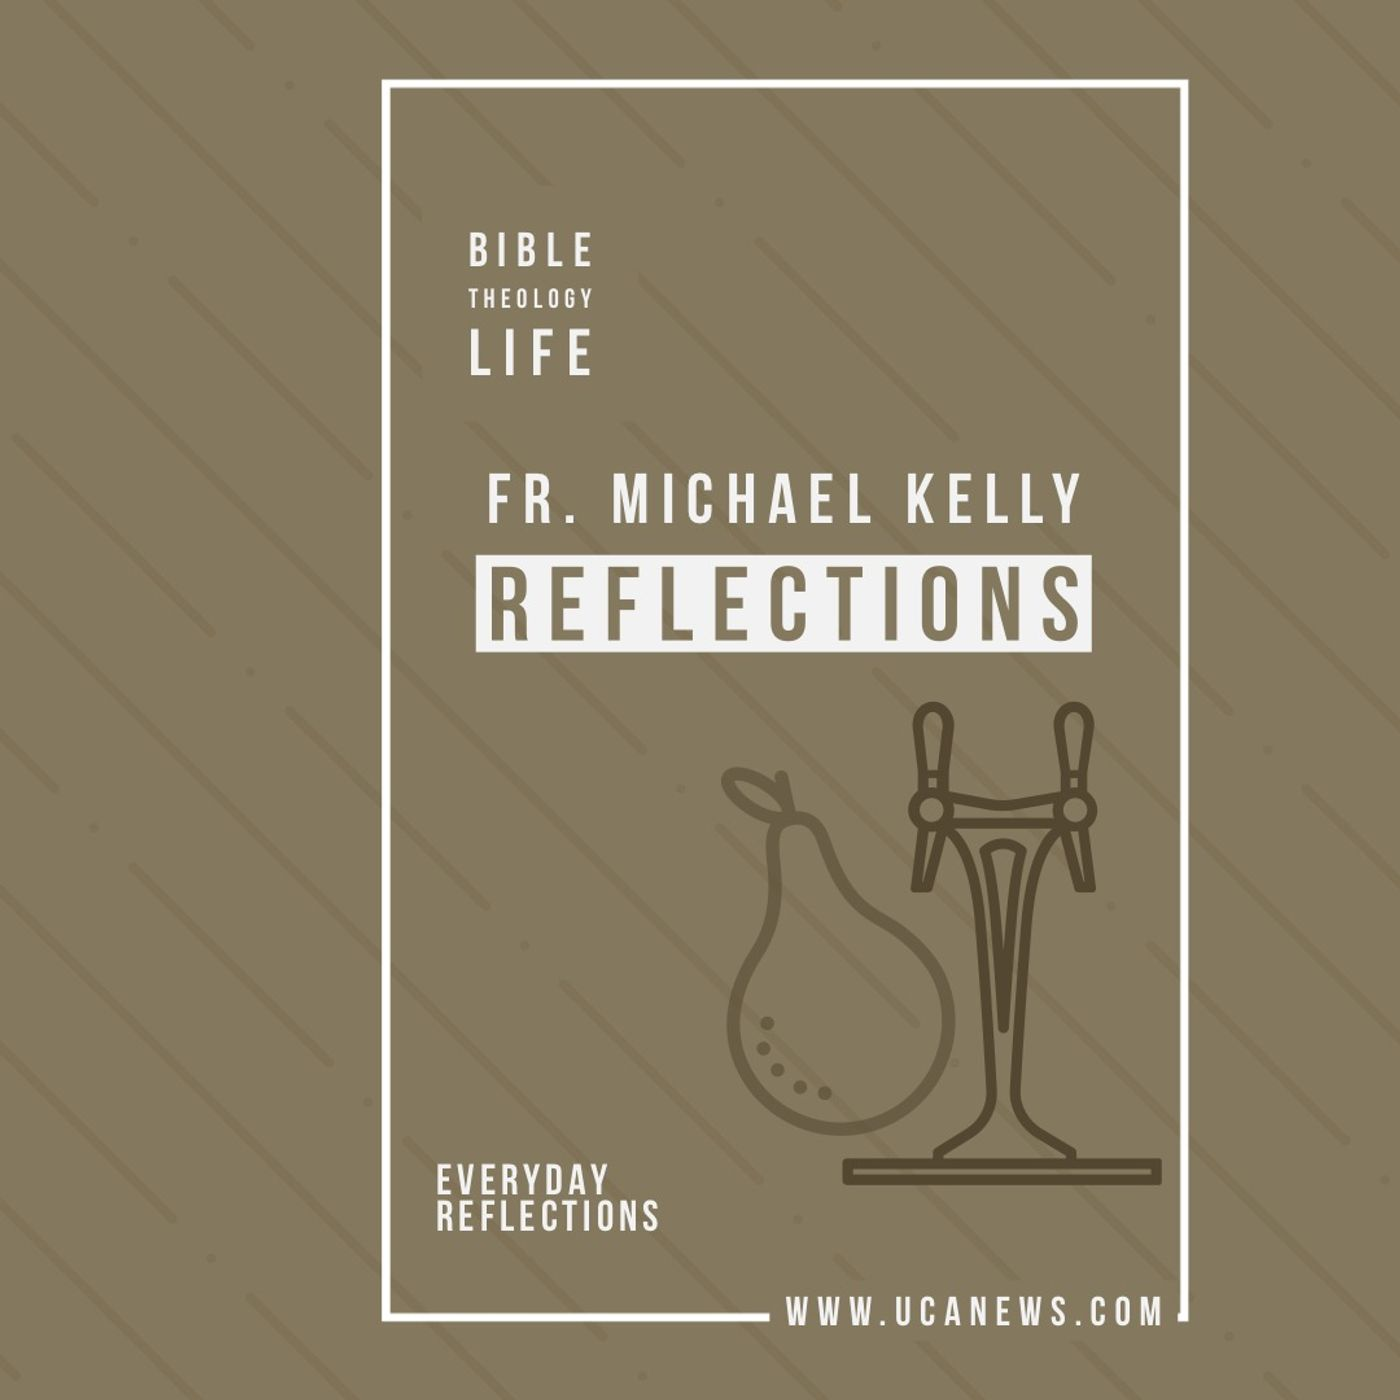 Reflections with Fr. Michael Kelly - Saturday 24 Apr, 2021